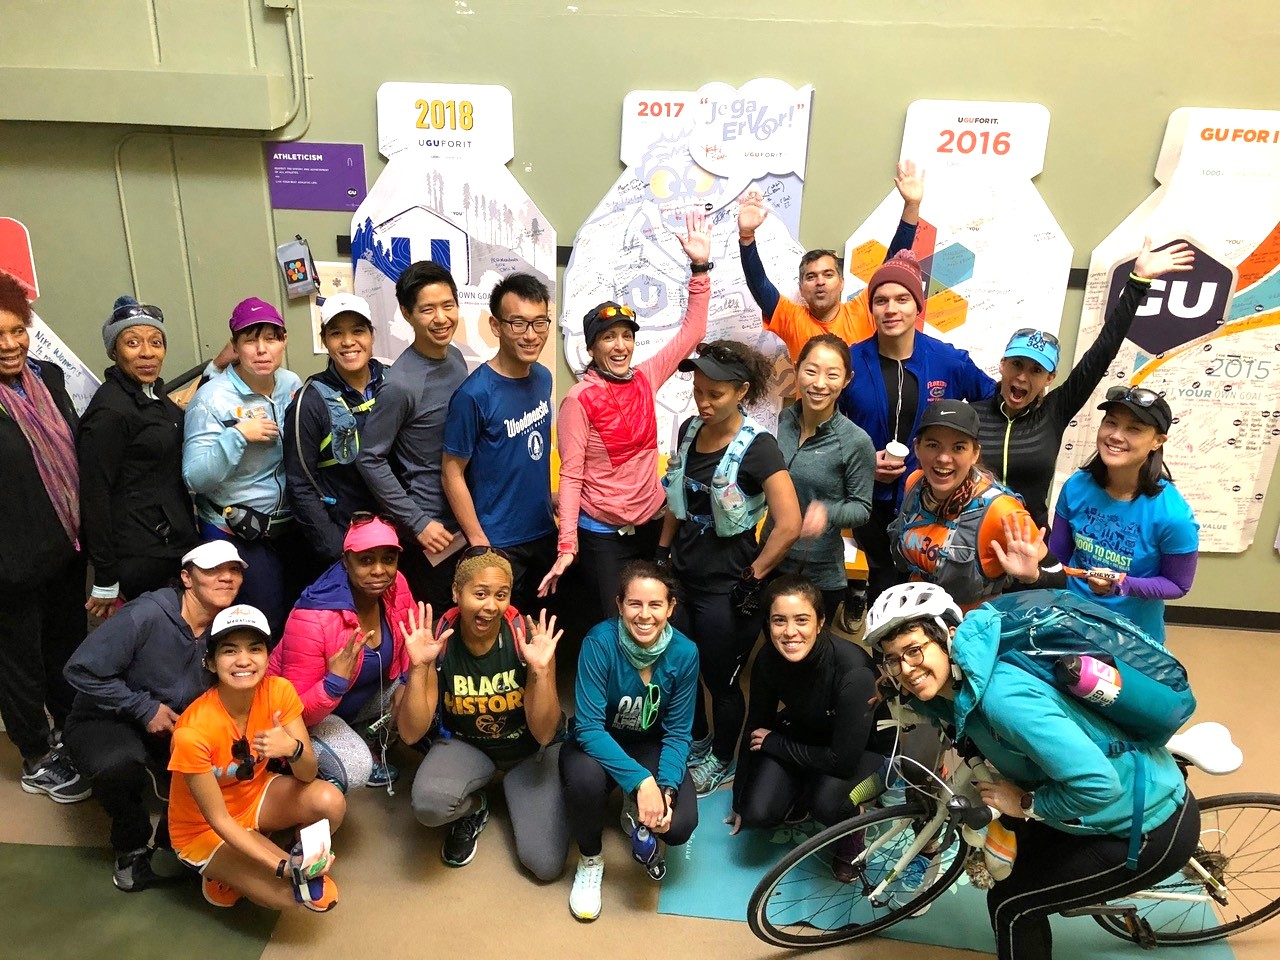 Big Sur International Marathon runners celebrate GU Energy sponsorship